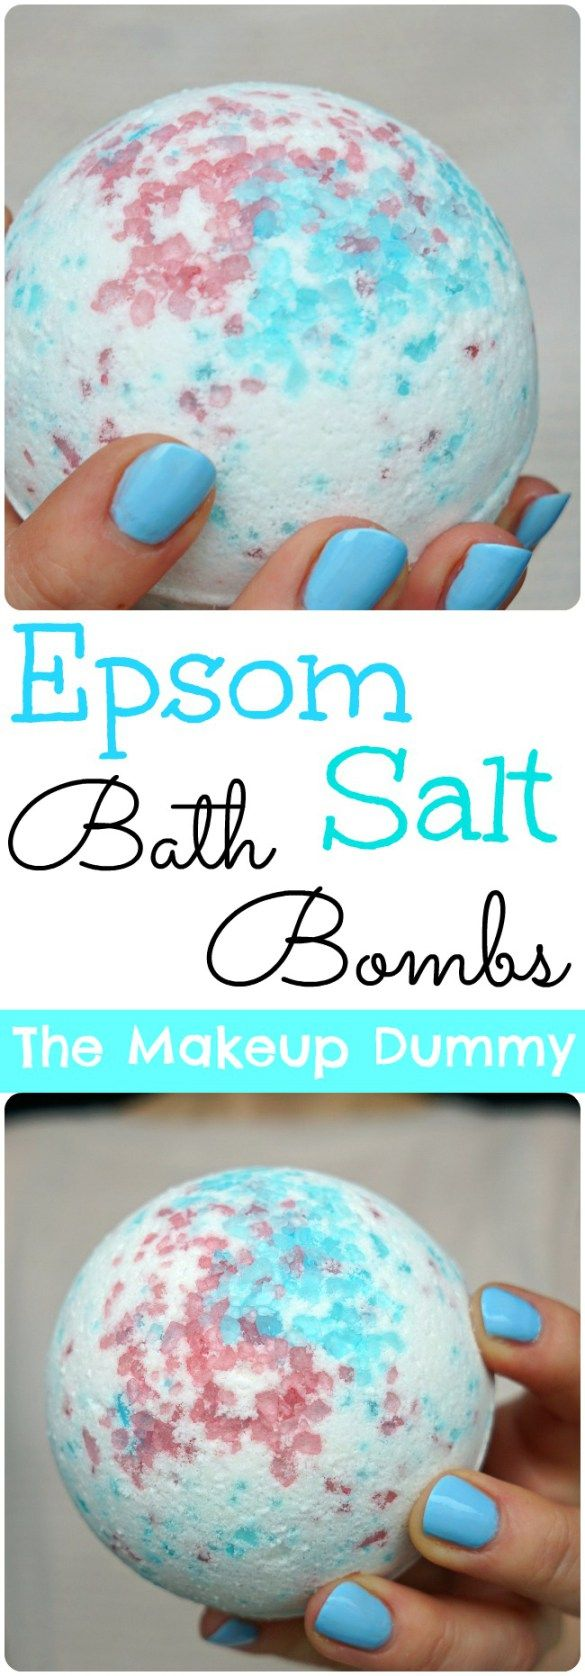 Make your own amazing LUSH inspired DIY Bath Bombs! Copycat tutorial by The Makeup Dummy